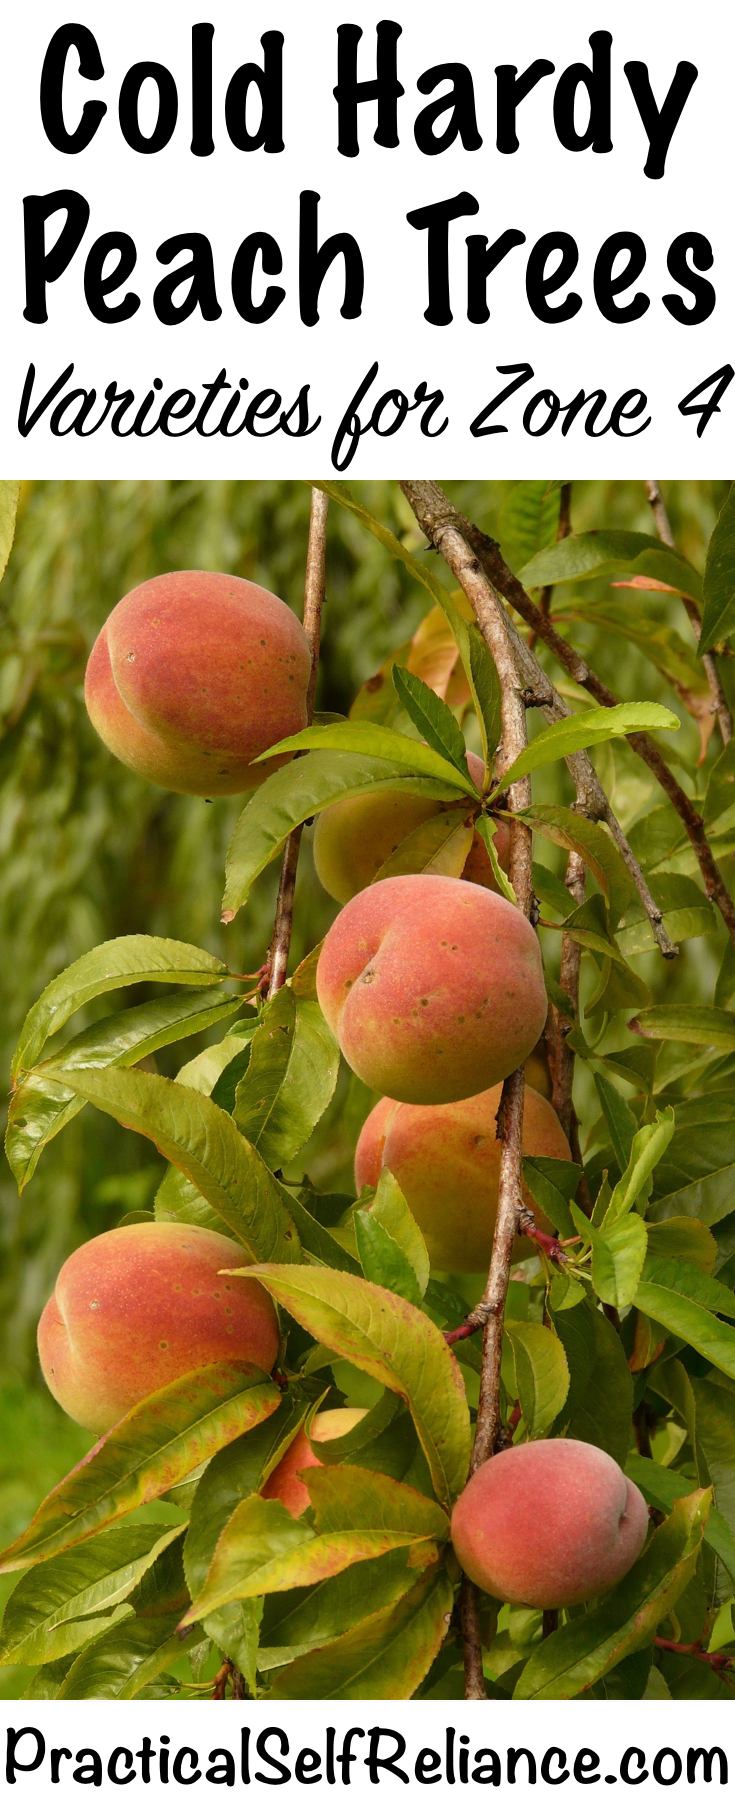 Cold Hardy Peach Tree Varieties for Zone 4